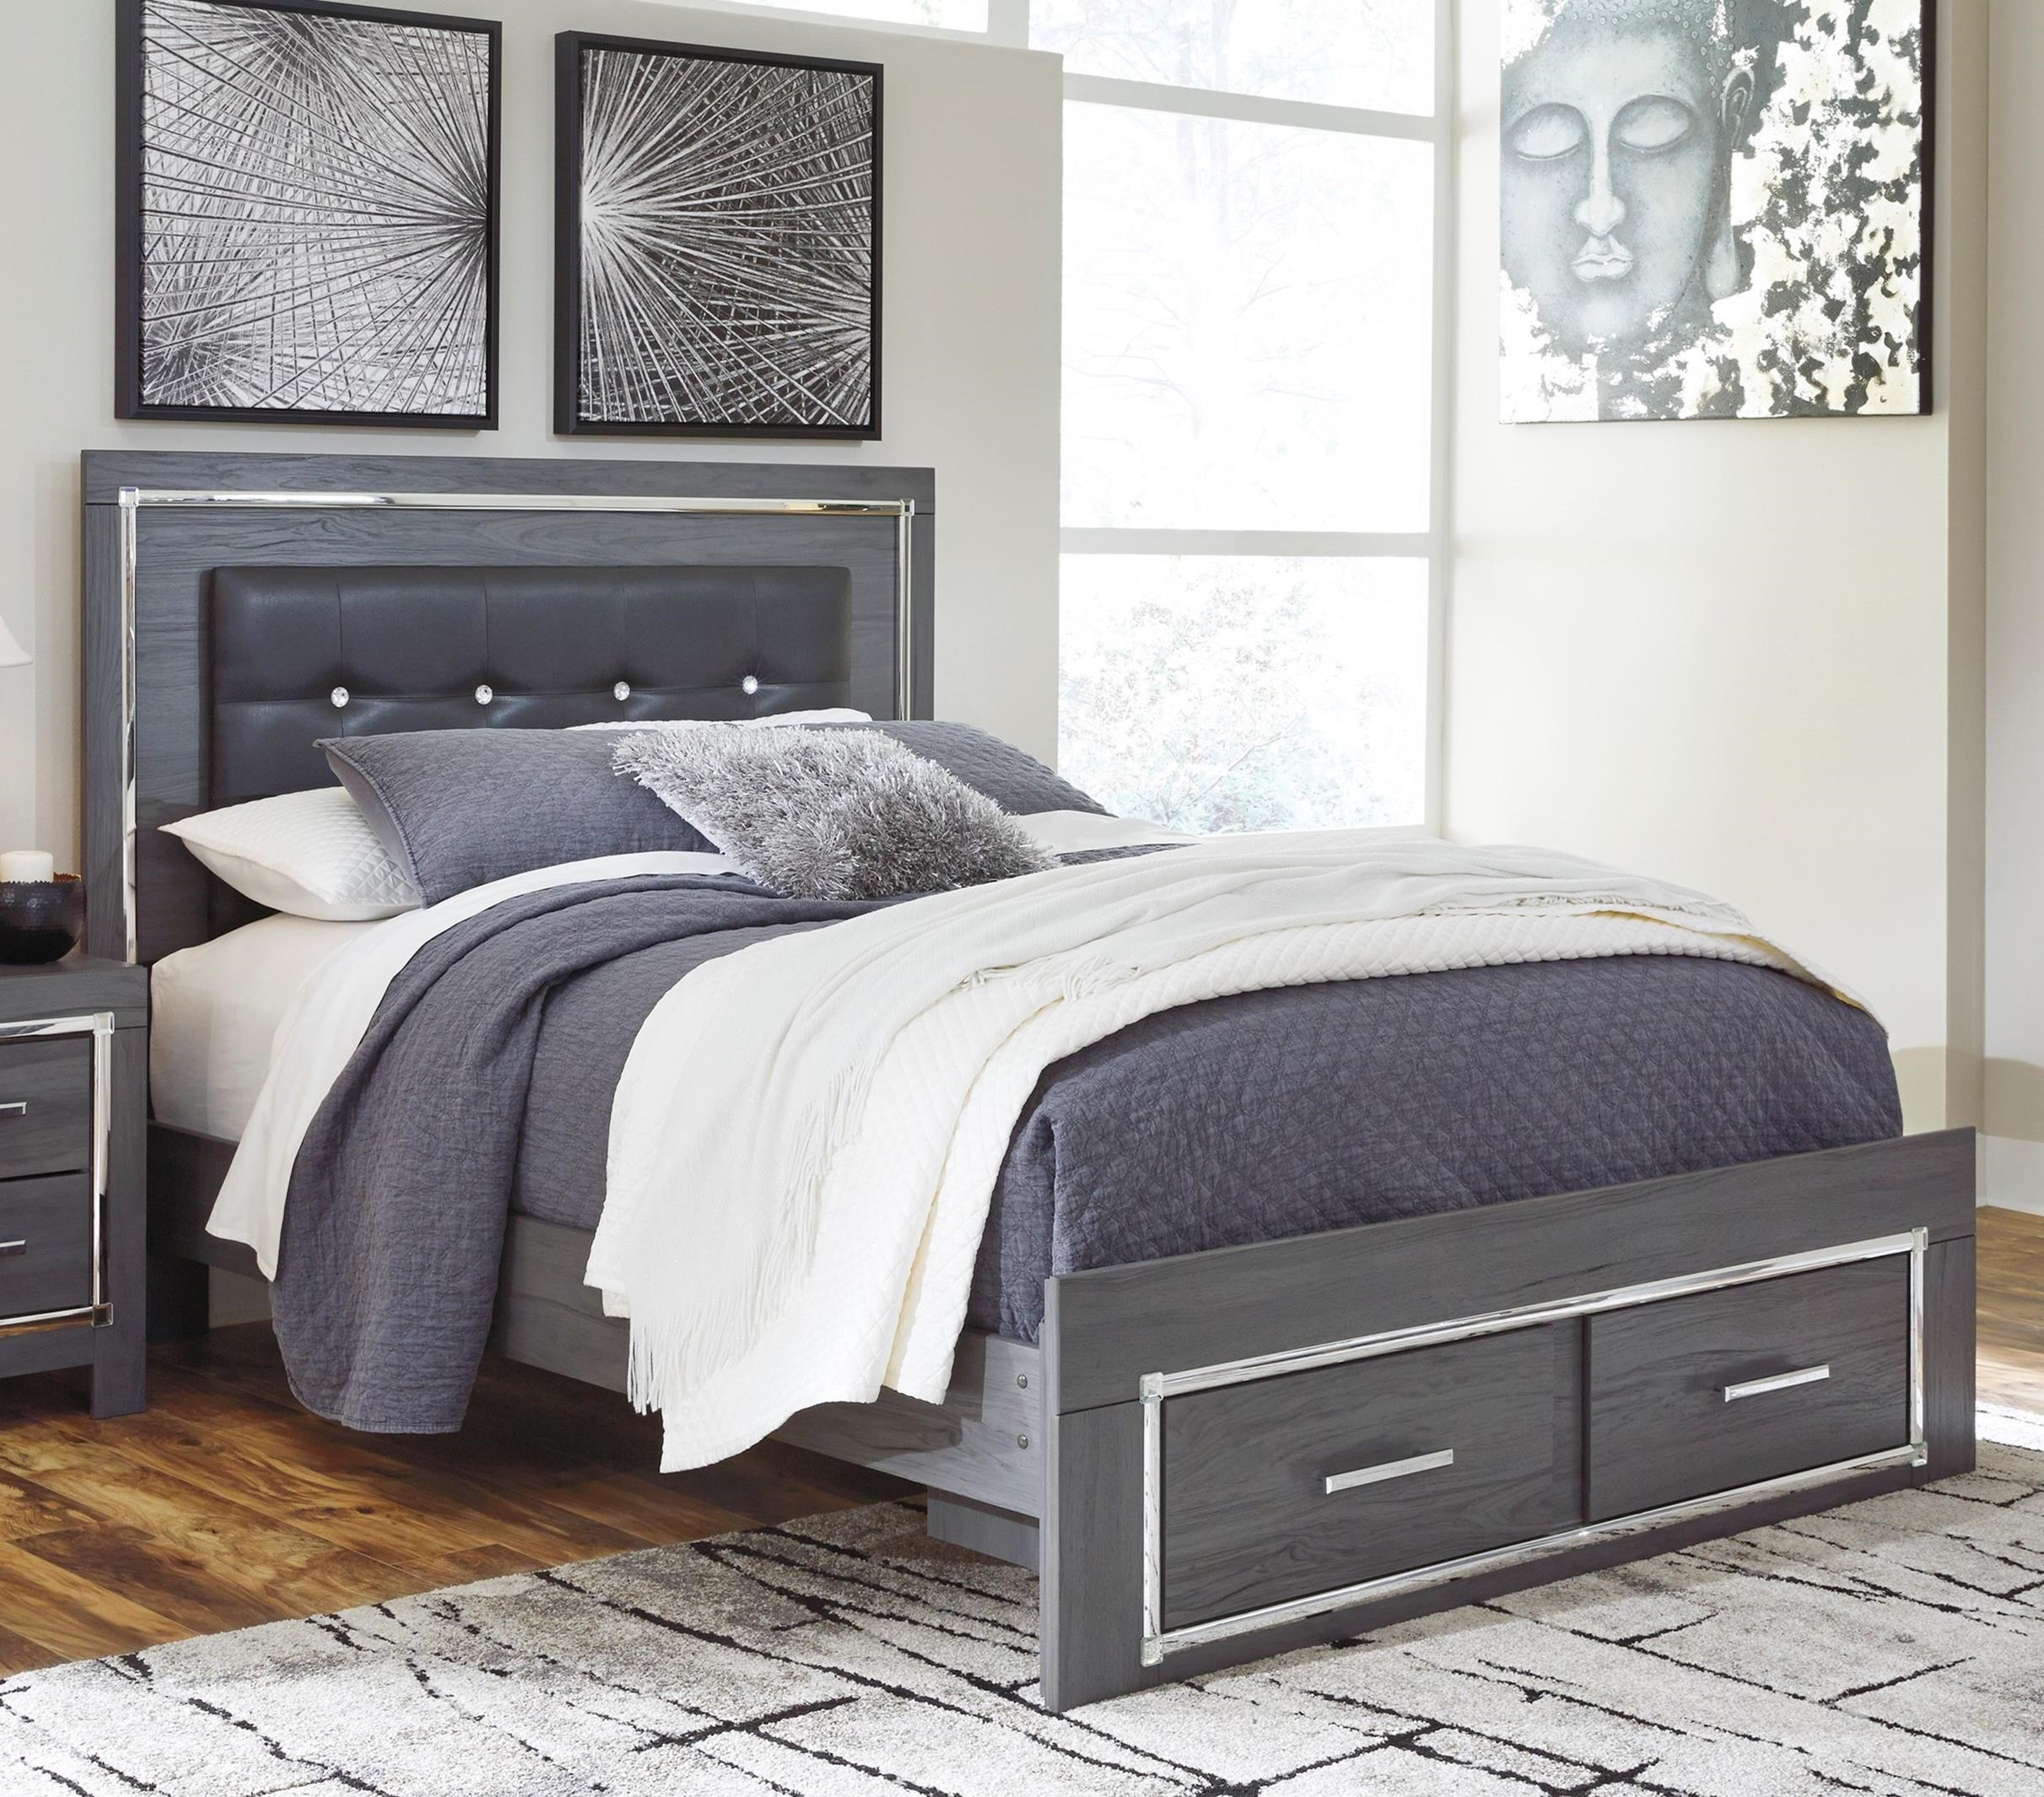 Queen Upholstered Bed with Color Changing LED Lighting and Footboard Storage